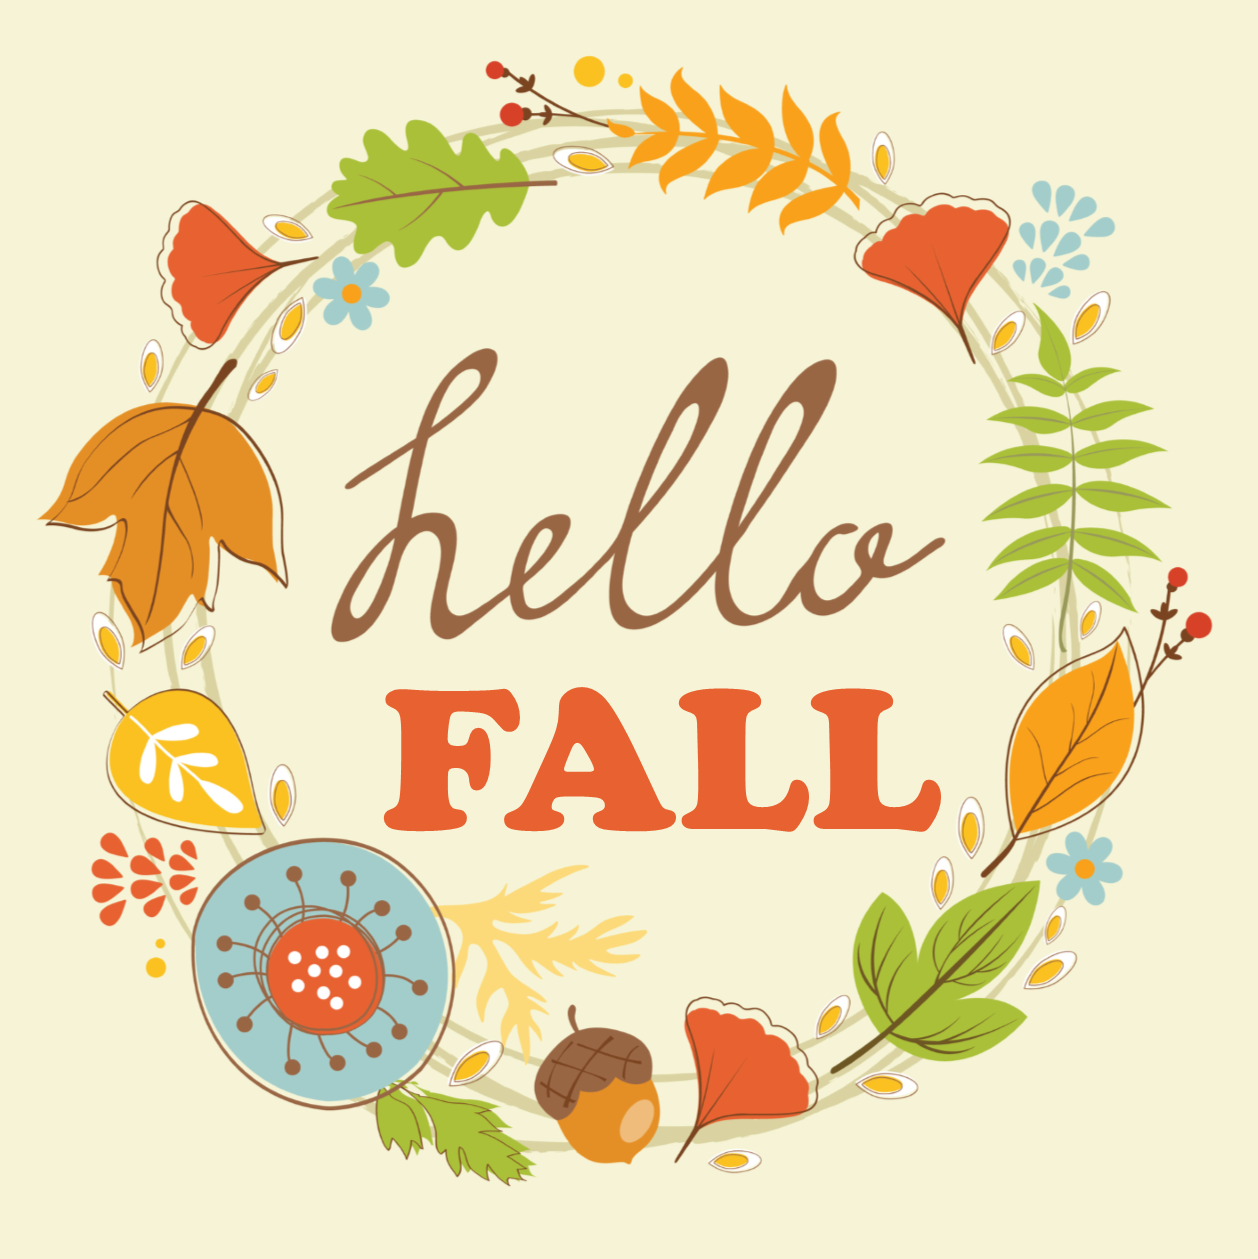 First Day Of Fall Png - Things to do on the First Day of Fall | Southern Belle Simple